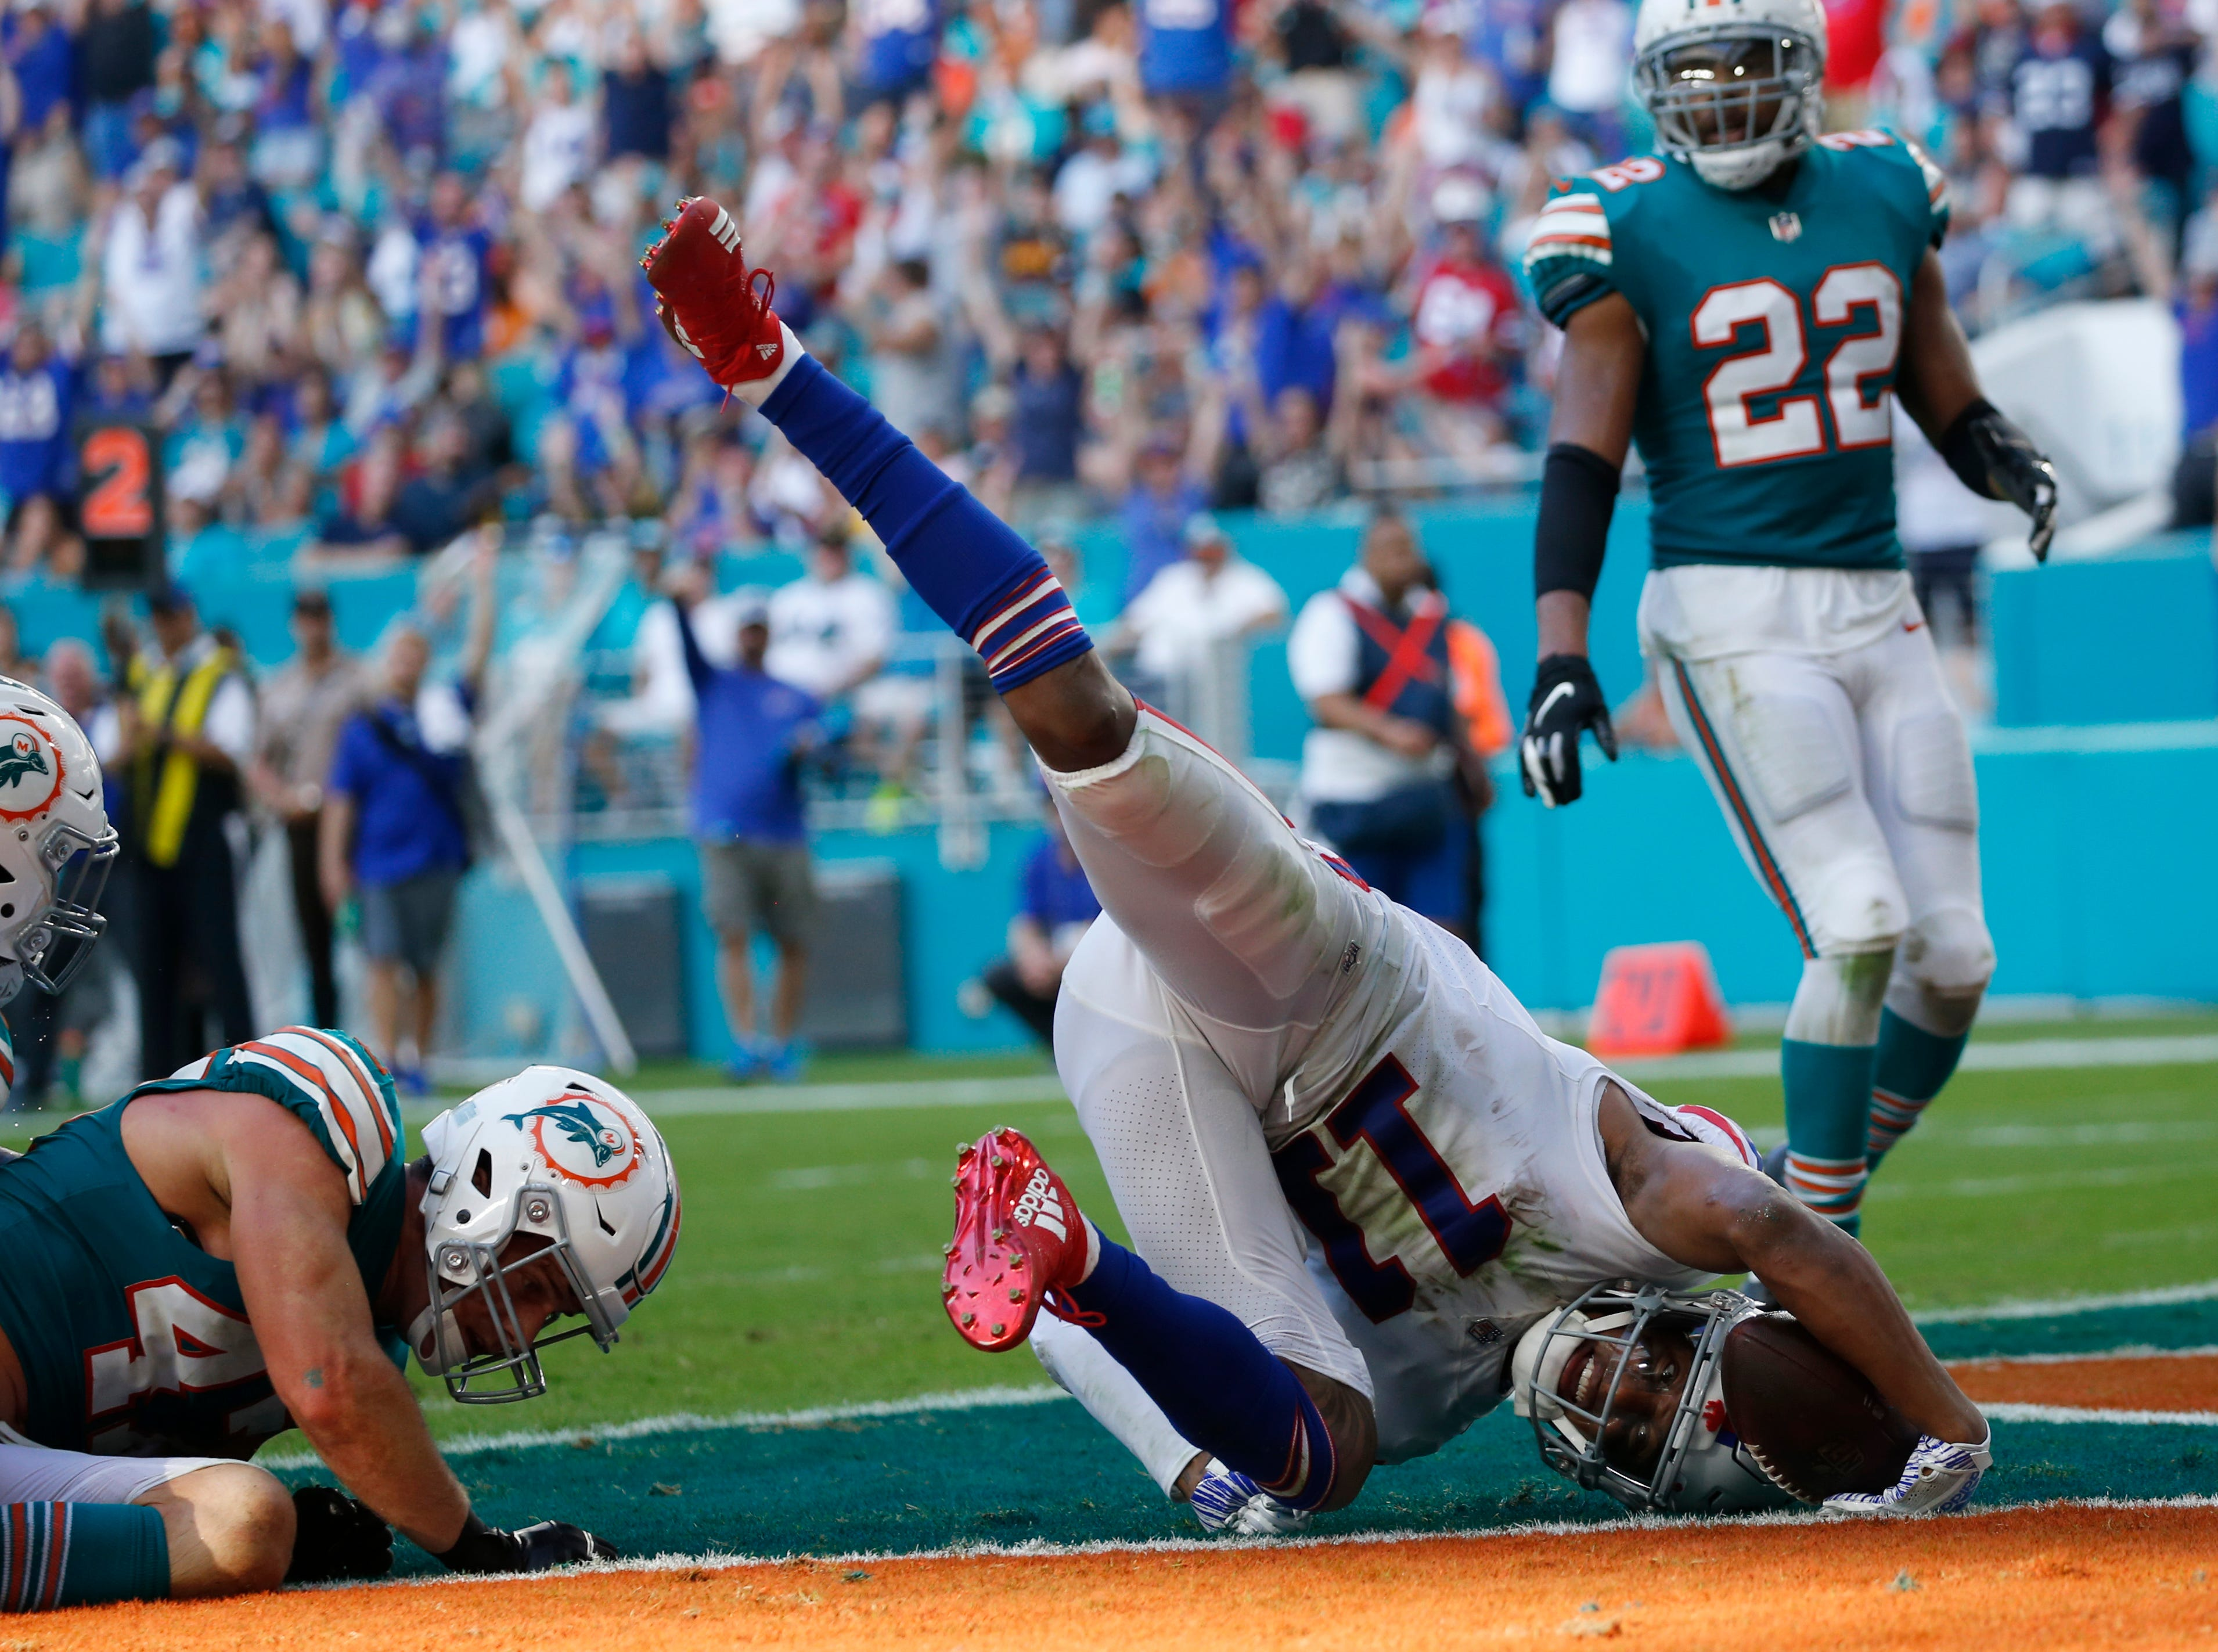 Buffalo Bills wide receiver Zay Jones (11) scores a touchdown, during the second half of an NFL football game against the Miami Dolphins, Sunday, Dec. 2, 2018, in Miami Gardens, Fla. (AP Photo/Joel Auerbach)